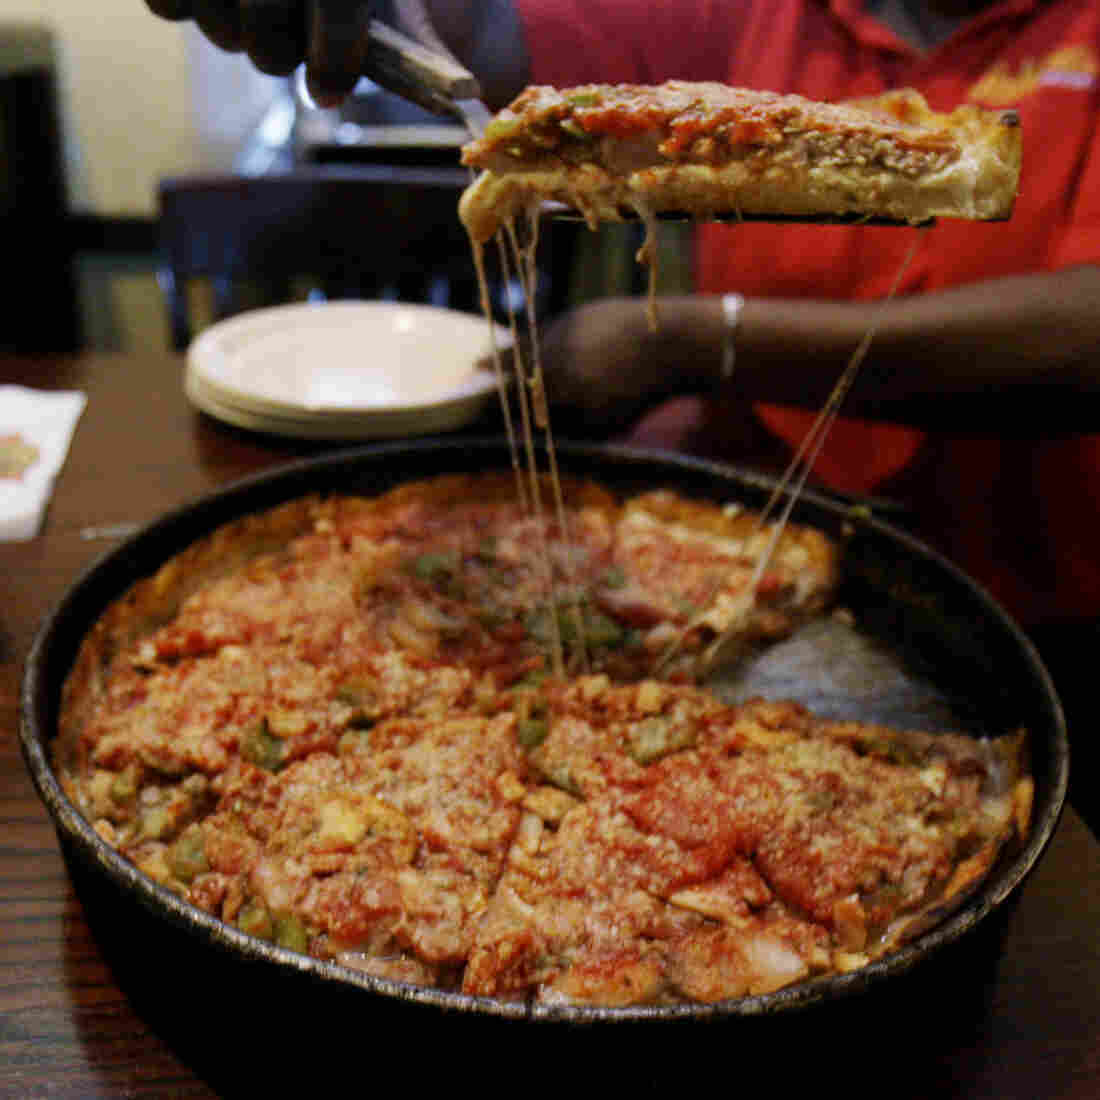 A server dishes up a slice of deep-dish pizza at Lou Malnati's Pizzeria in Chicago. The 1-1/2-inch thick legendary pie, loaded with sausage, mushrooms, pepperoni and onions, was invented in Chicago.